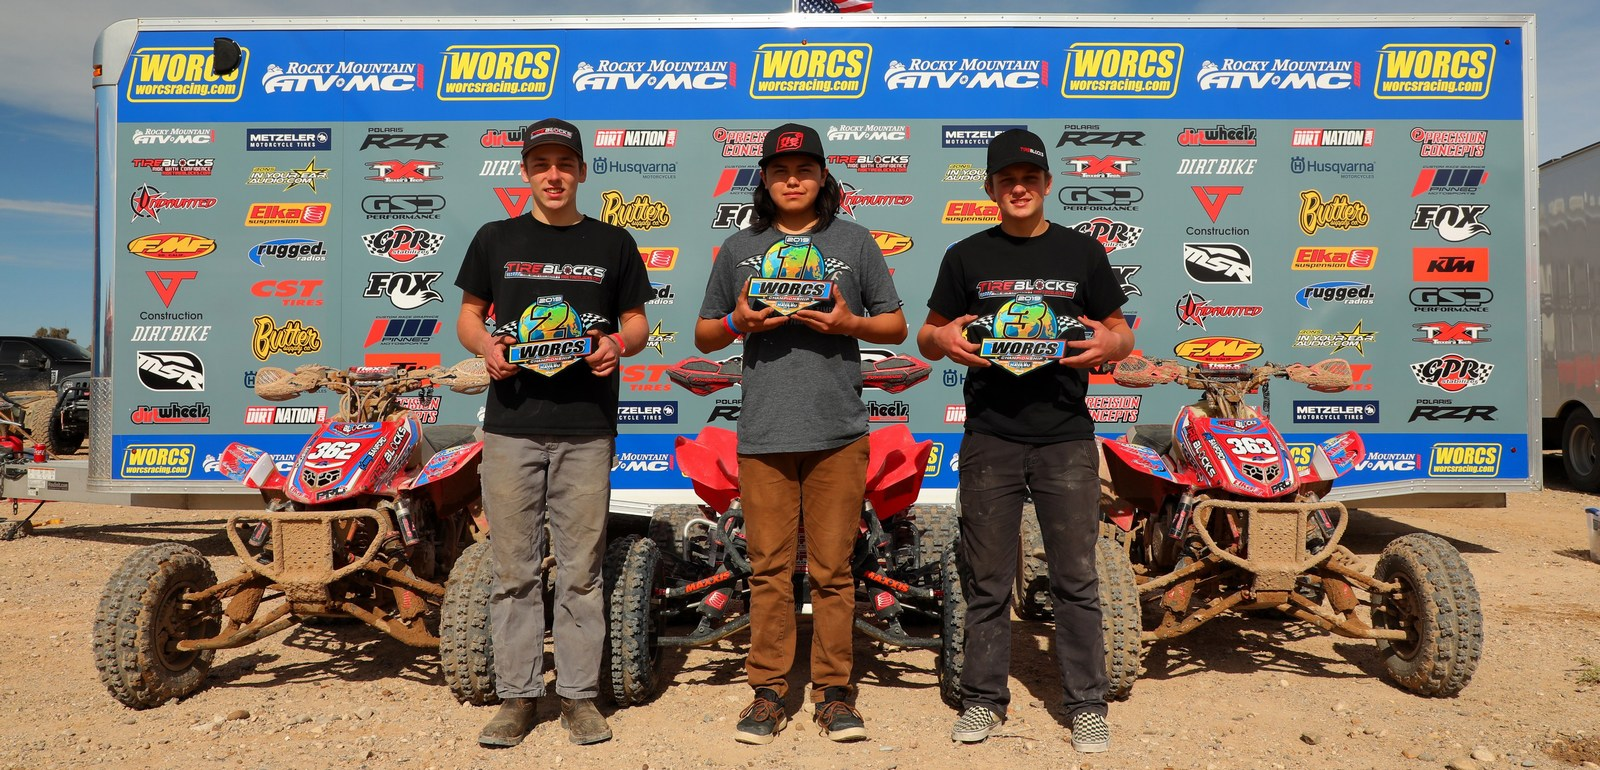 2019-02-podium-proam-atv-worcs-racing